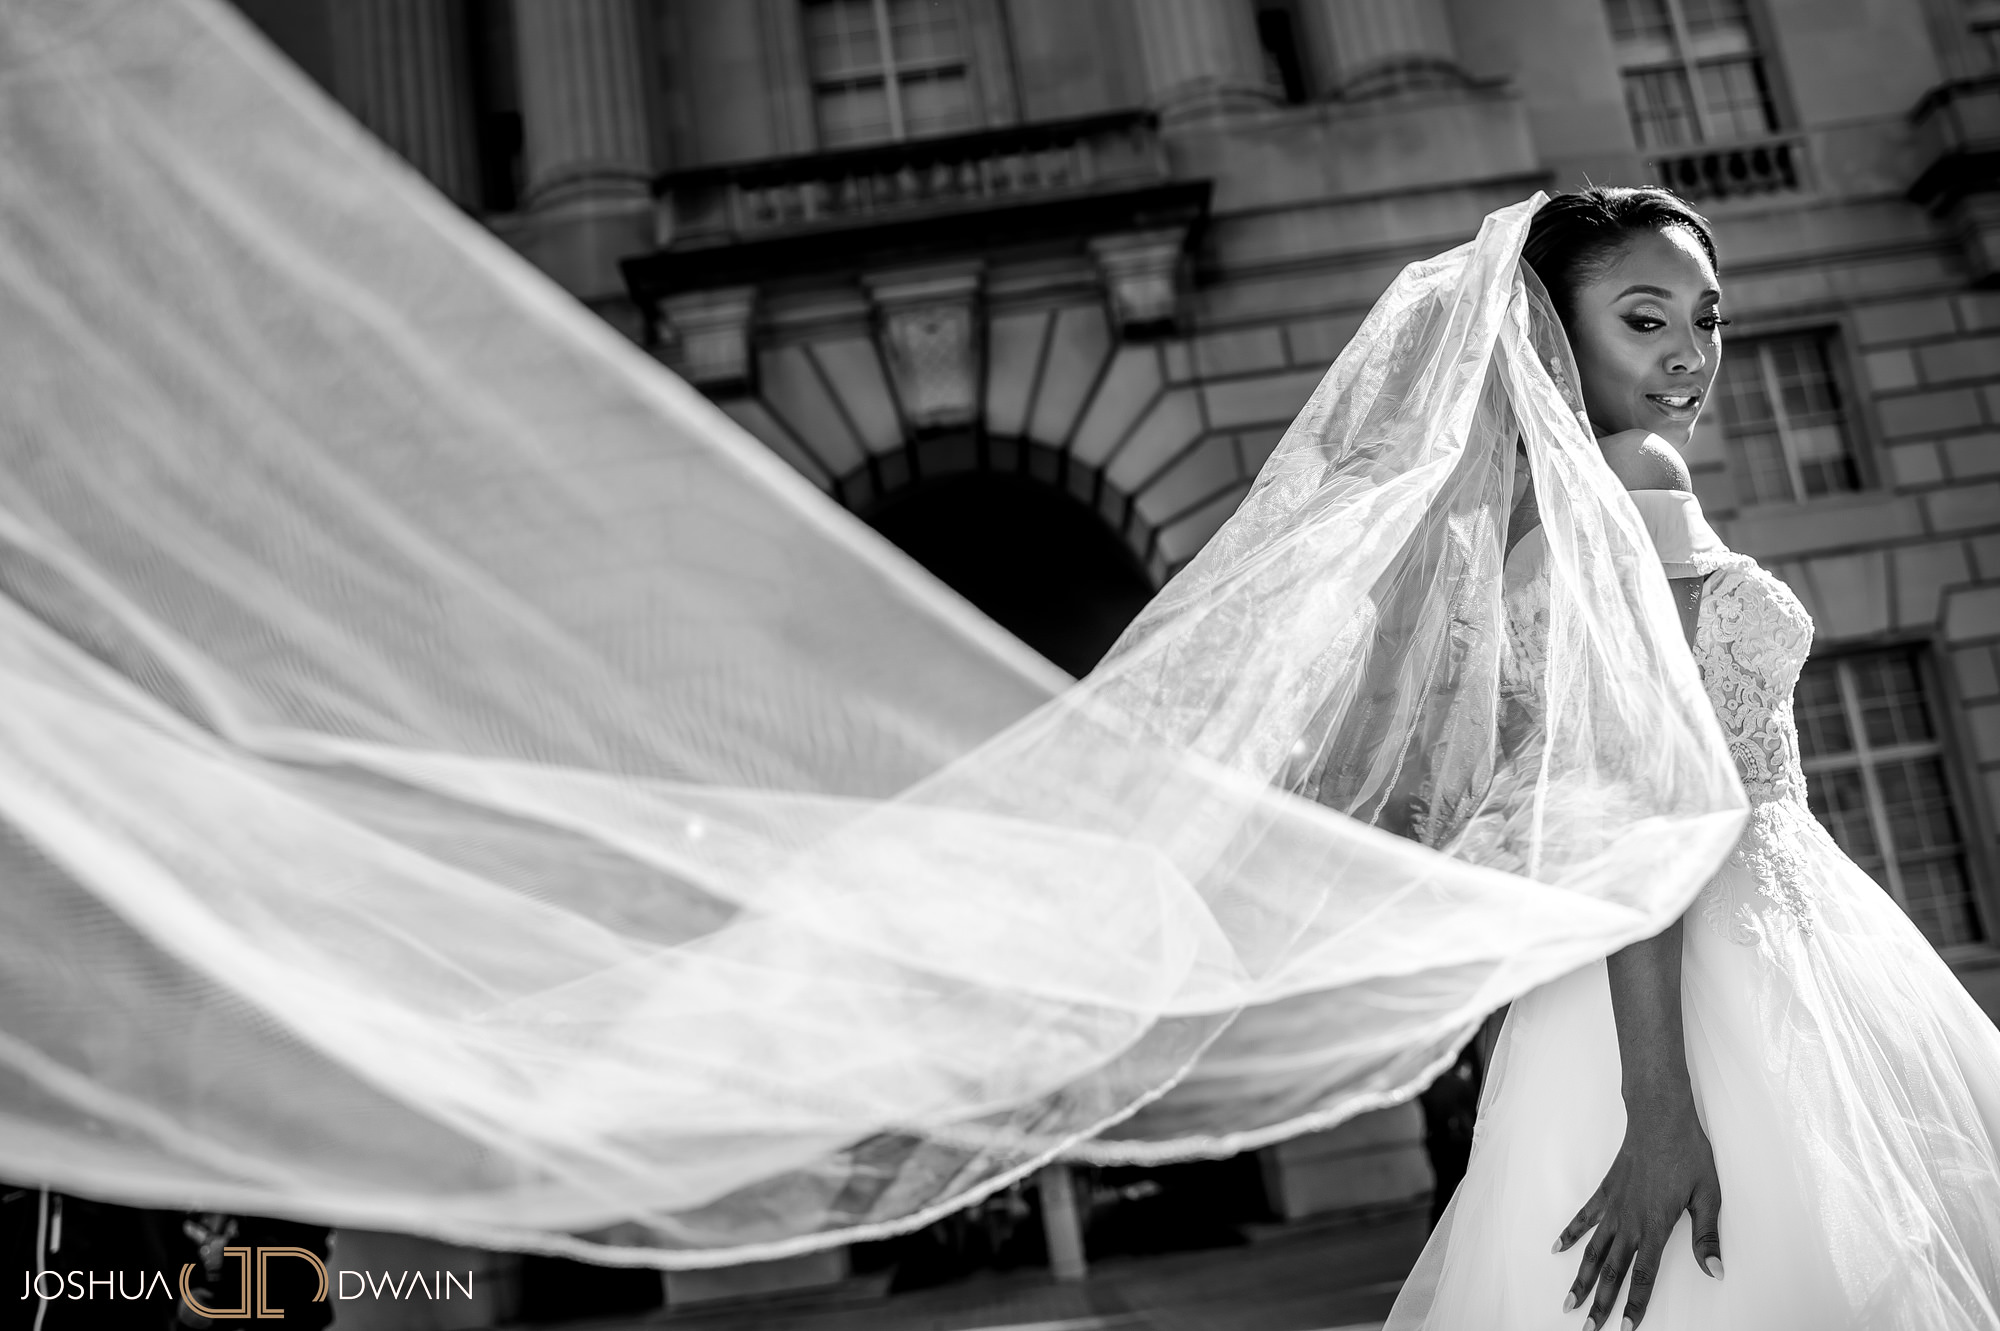 emerald-tolu--017-ronald-reagan-building-trade-center-best-washington-dc--wedding-photographer-joshua-dwain